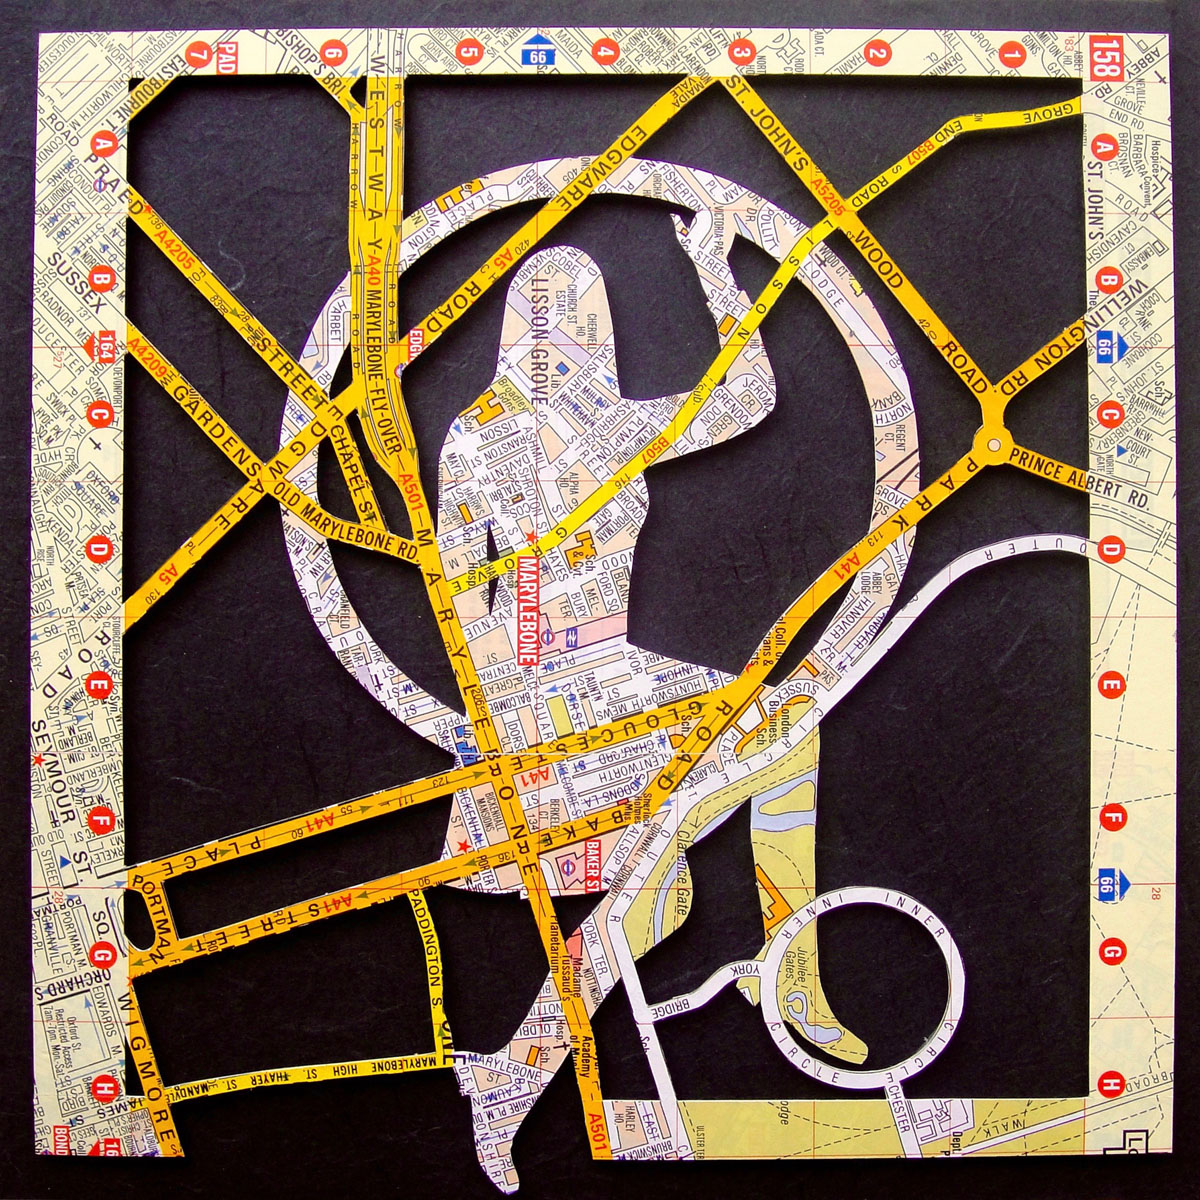 Only once did she forget to change out of her business school clothes before going to her glamorous night job as an aerialist performer. (2016) 12x12: Mixed Media Collage.